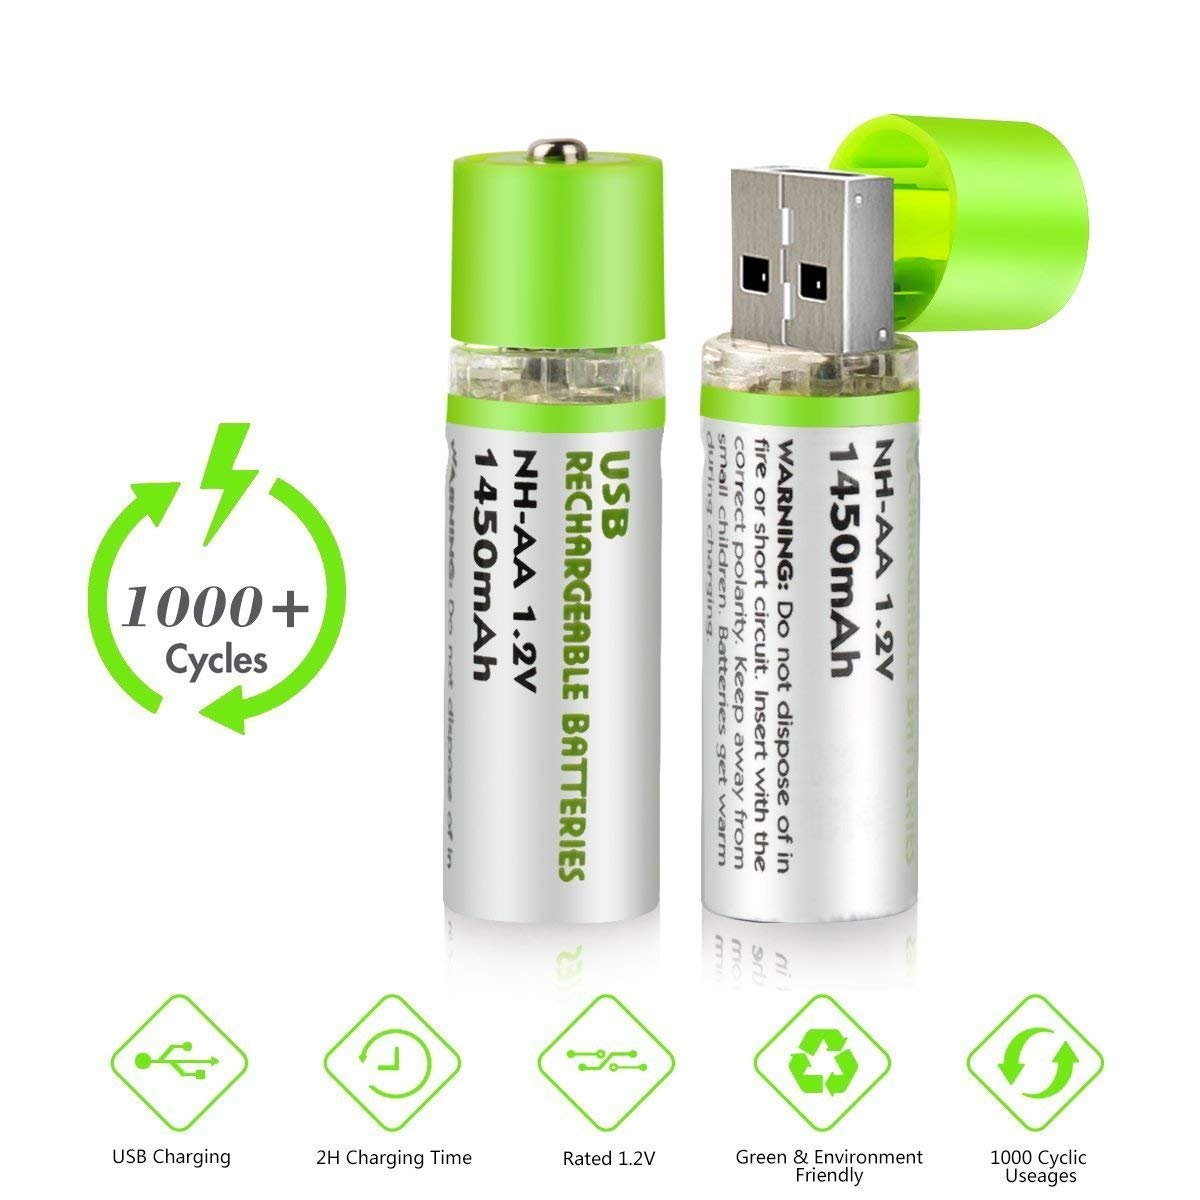 Usb Rechargeable Aa Batteries Enegitech 2 In 1 Design Charger Circuit Ni Mh 12v 1450mah Battery Keyboards Toys Remote Controller Health Personal Care